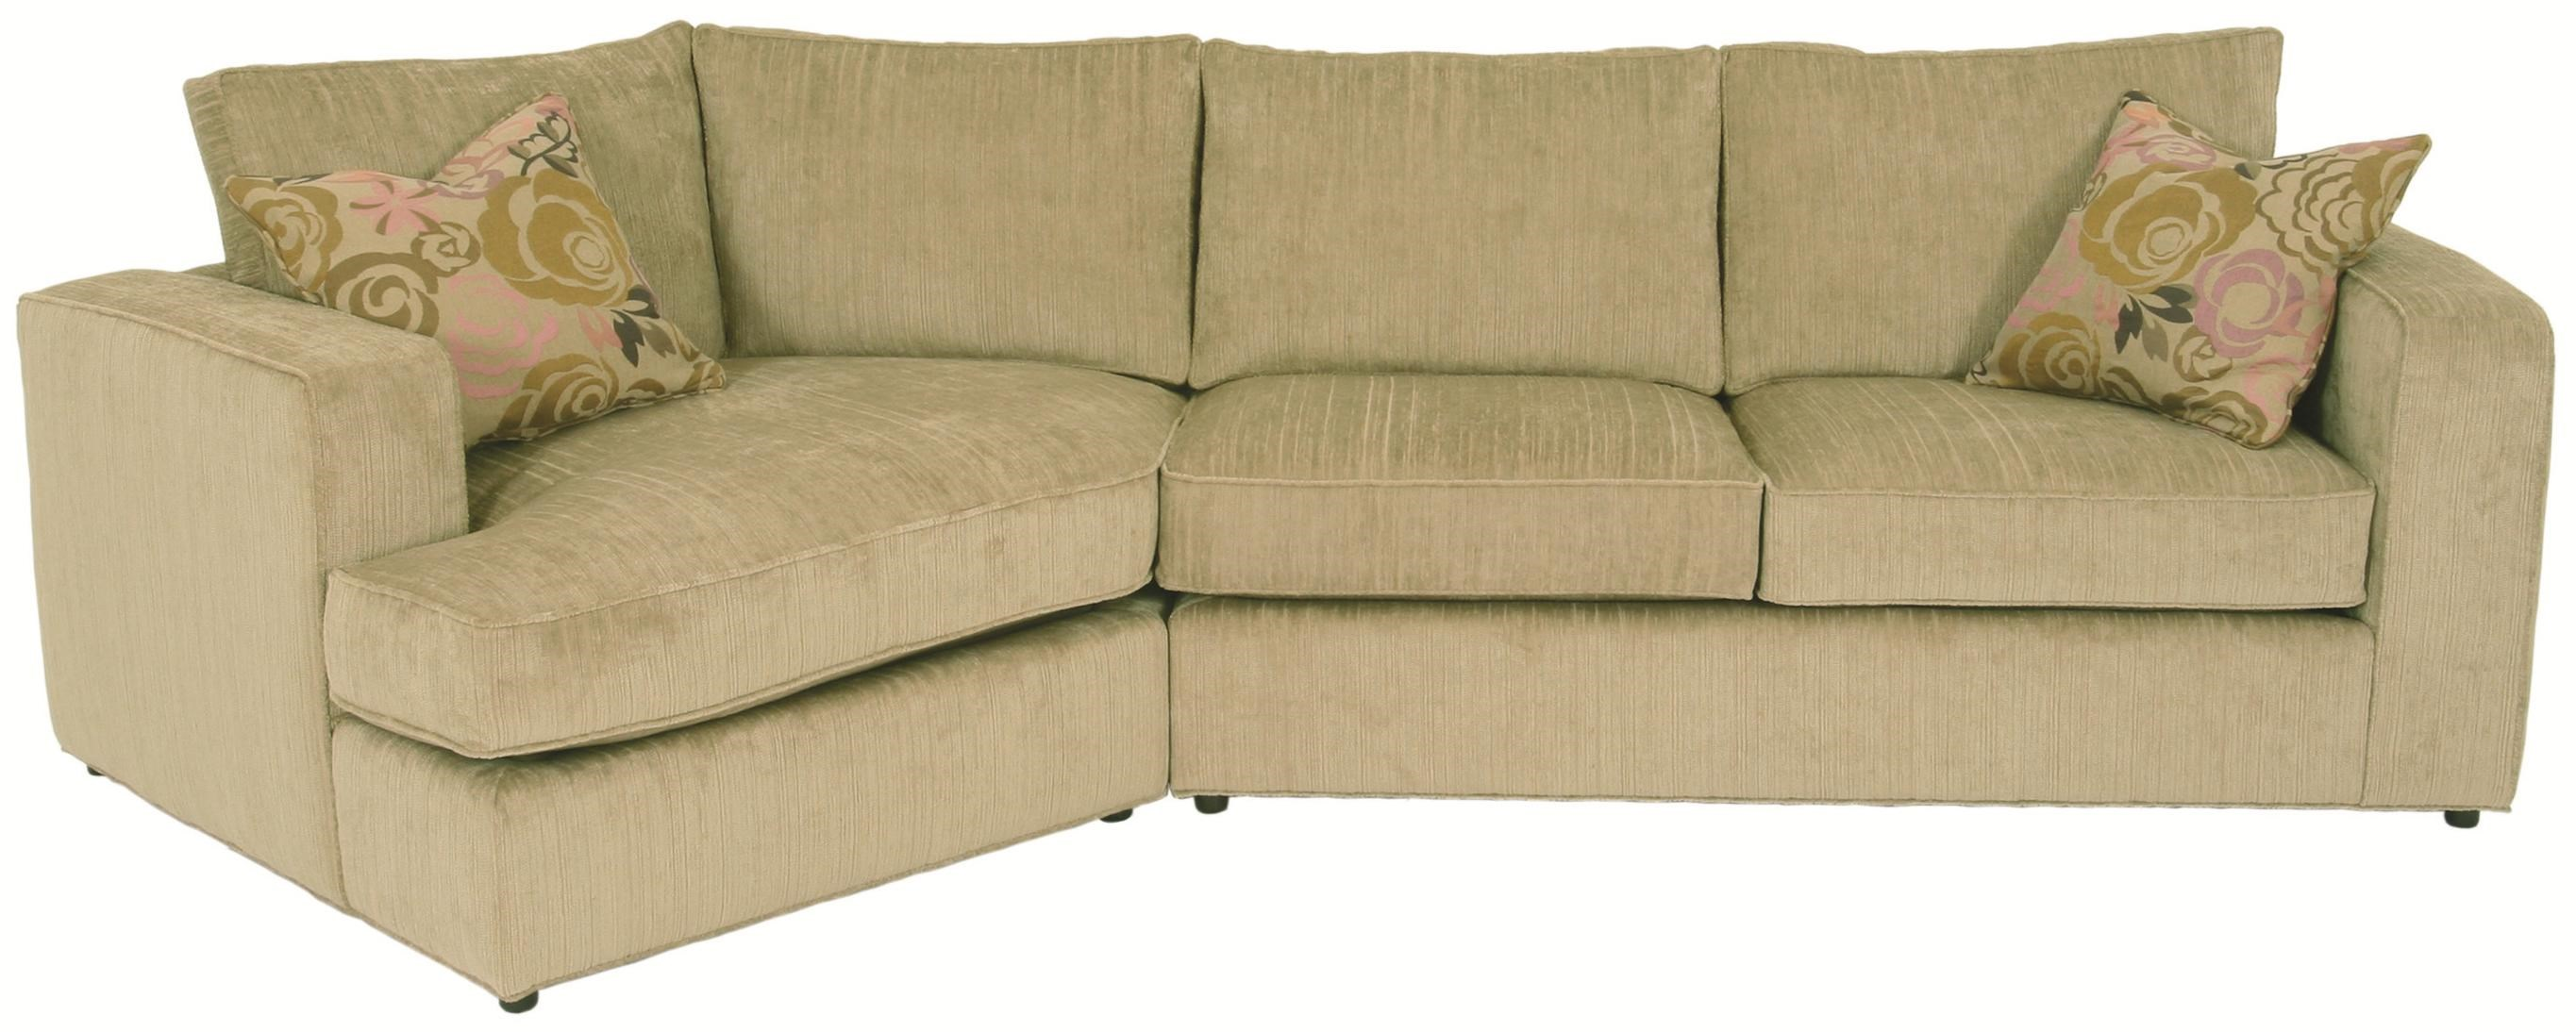 angled sectionals sofas sofa mart mishawaka in norwalk milford sectional with track arms loose back cushions and chaise dunk bright furniture